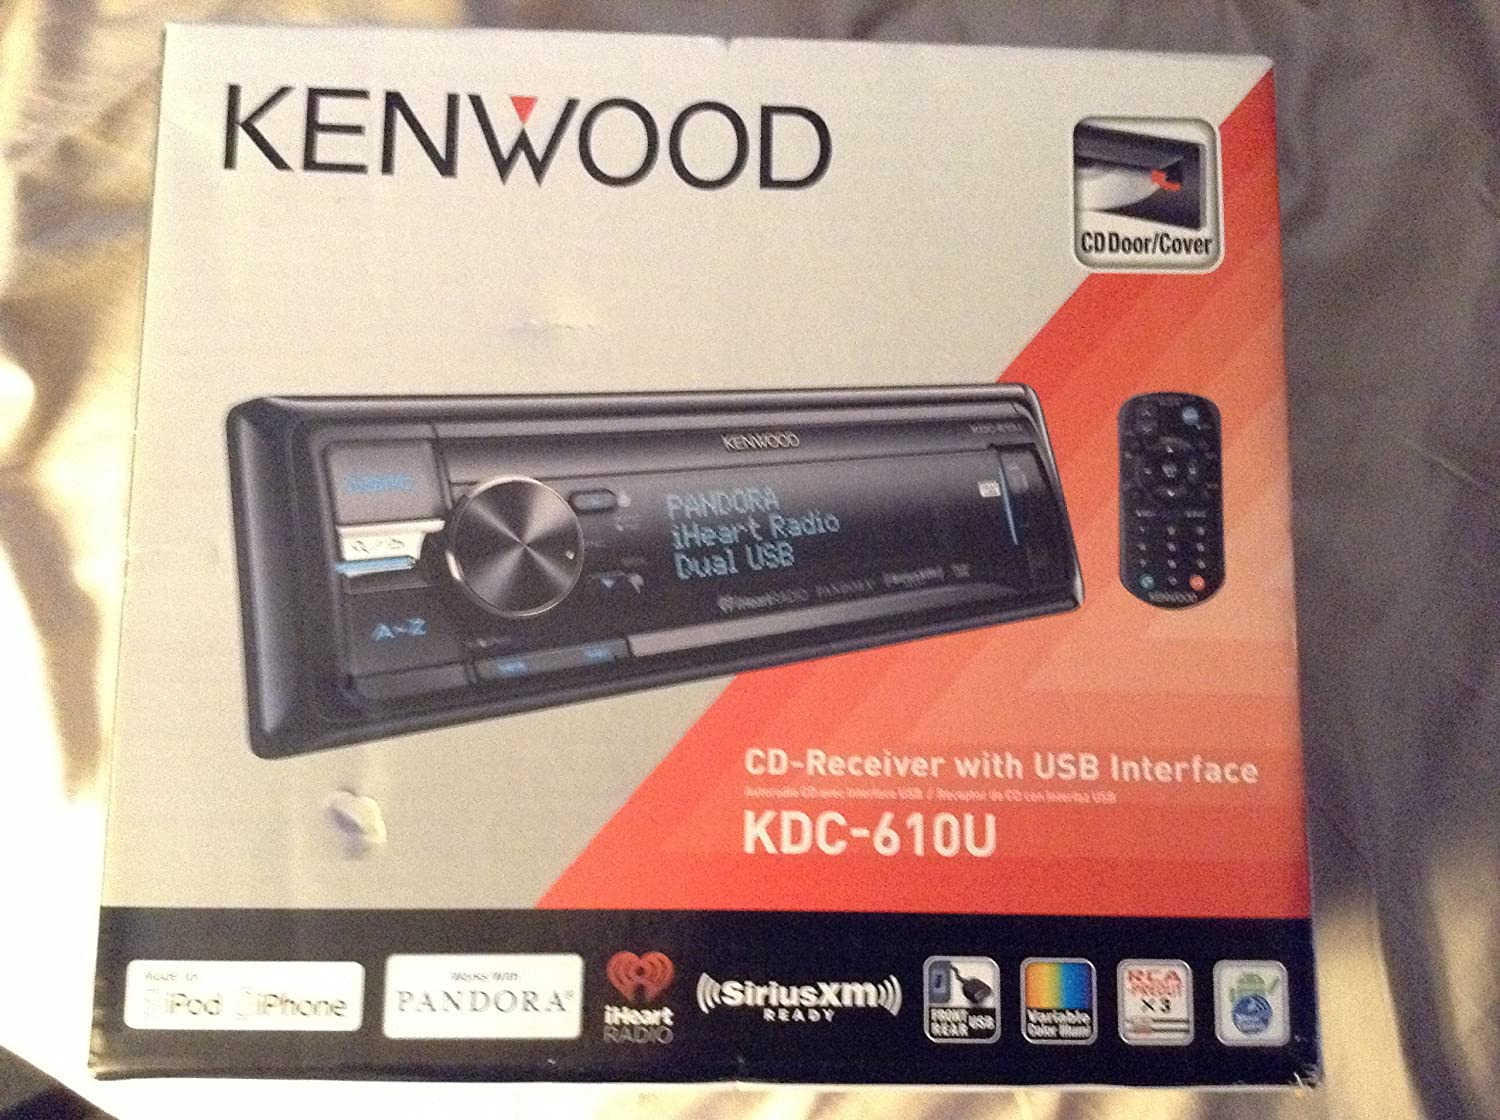 91ms9JUyklL._SL1500_ amazon com kenwood kdc 610u cd player with dual usb multi color kenwood kdc 610u wiring diagram at edmiracle.co